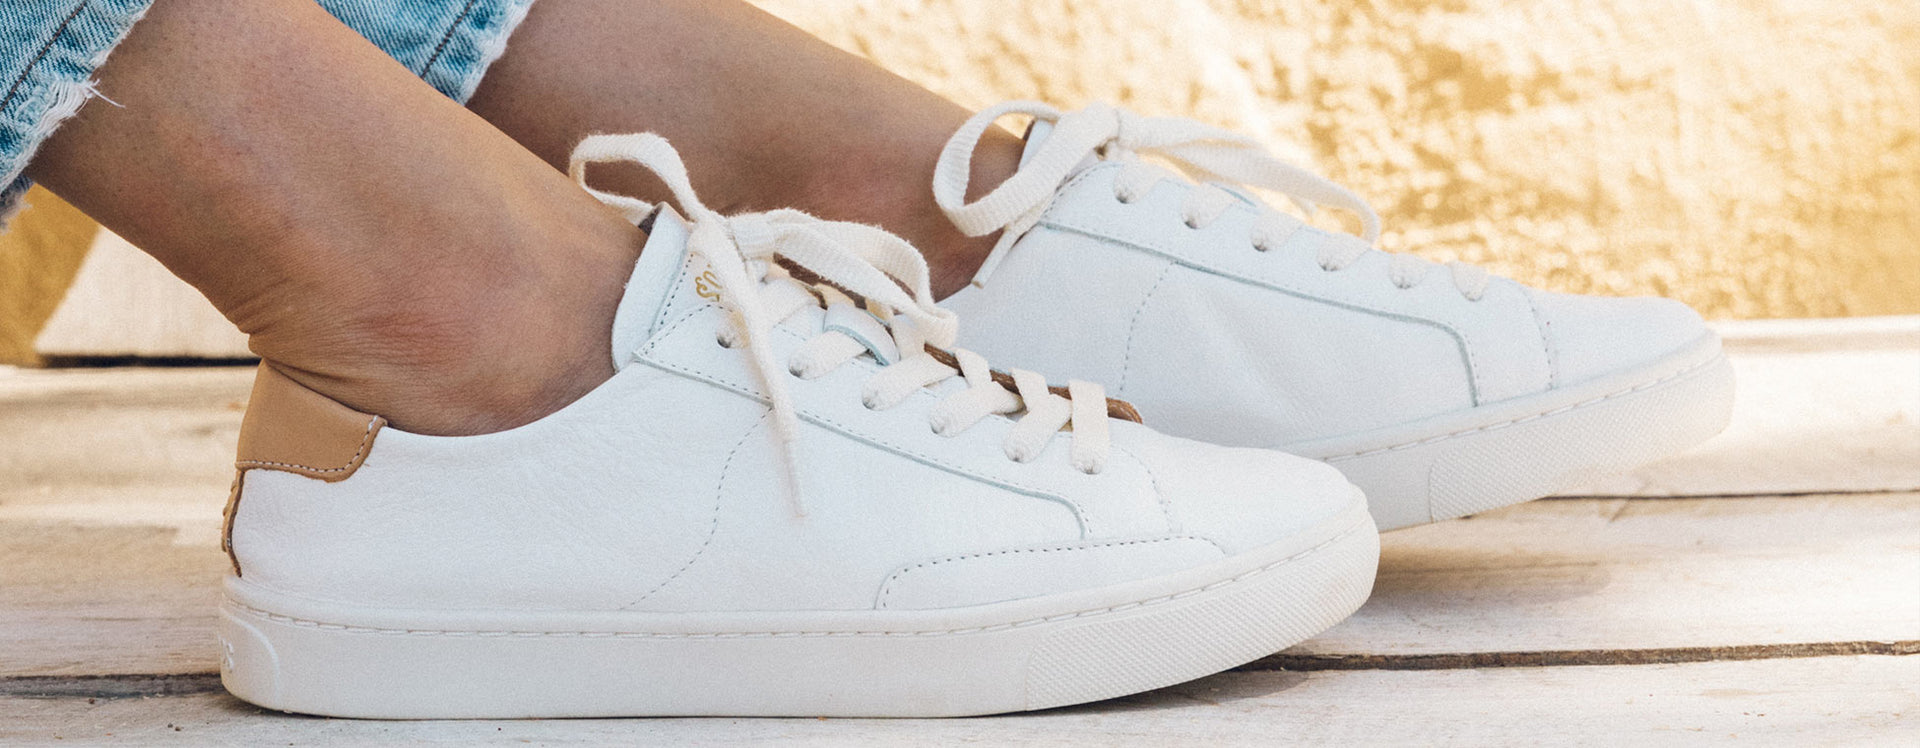 Ibiza Leather Sneaker image